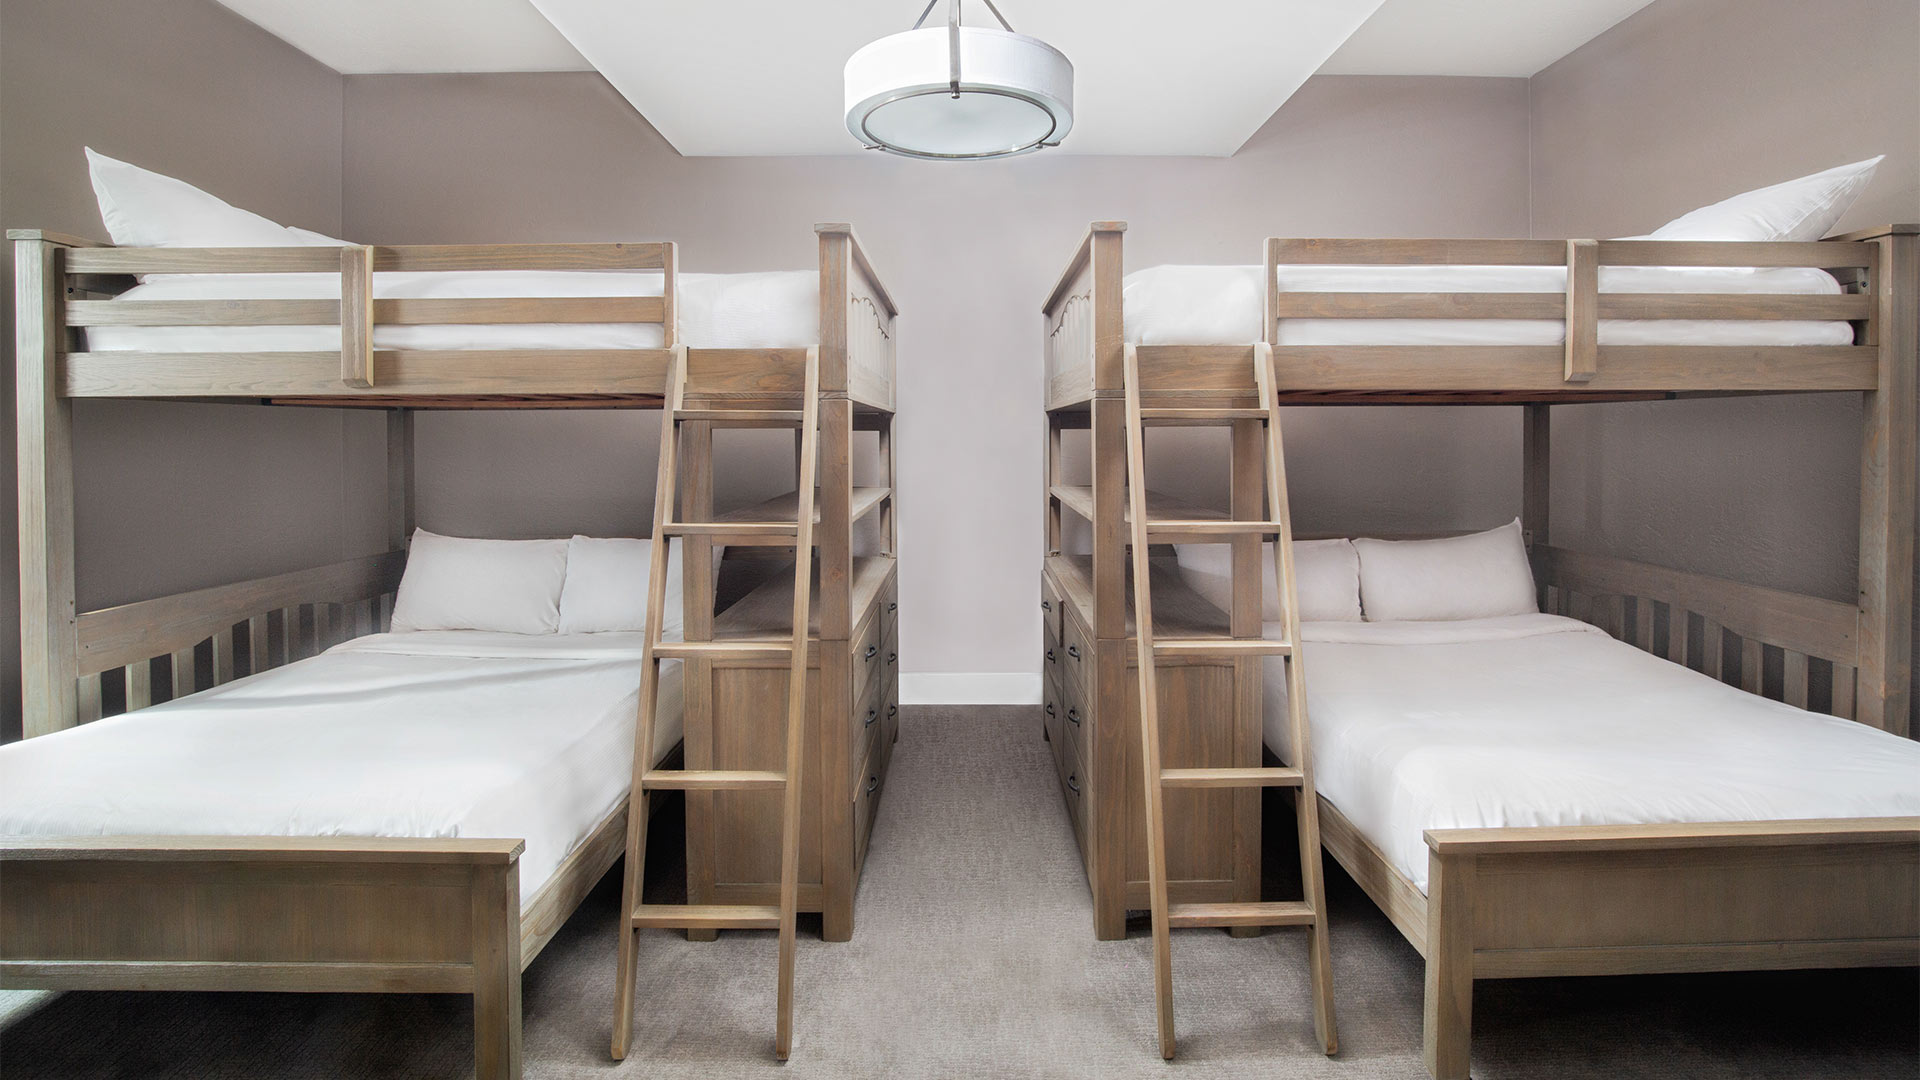 interior shot of a dogwood bedroom with two bunk beds on either side of the room. Each bed has all white linens